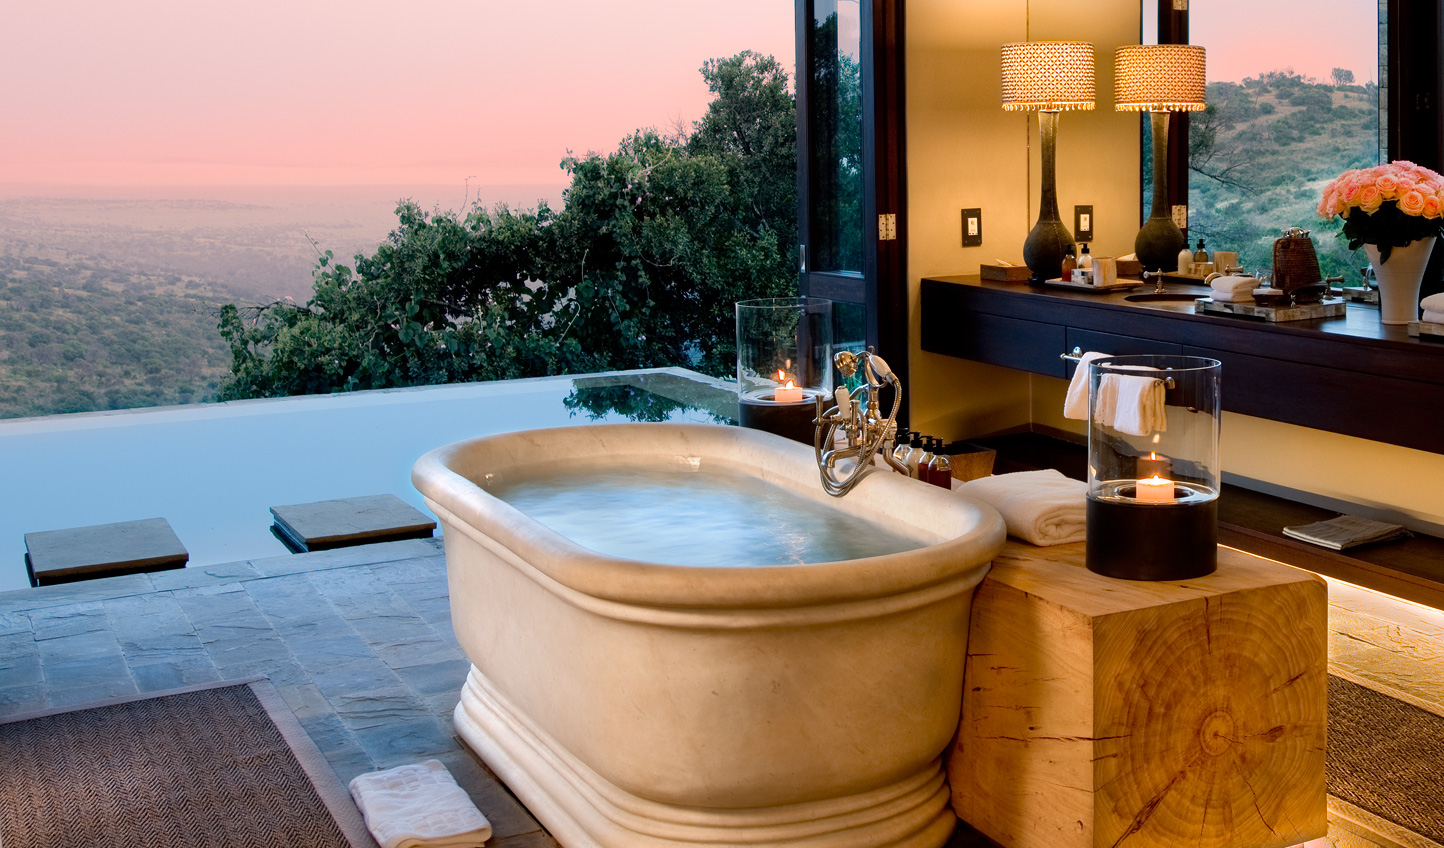 Lie back in the marble tub of the Master Suite and watch animals grazing in the valley below